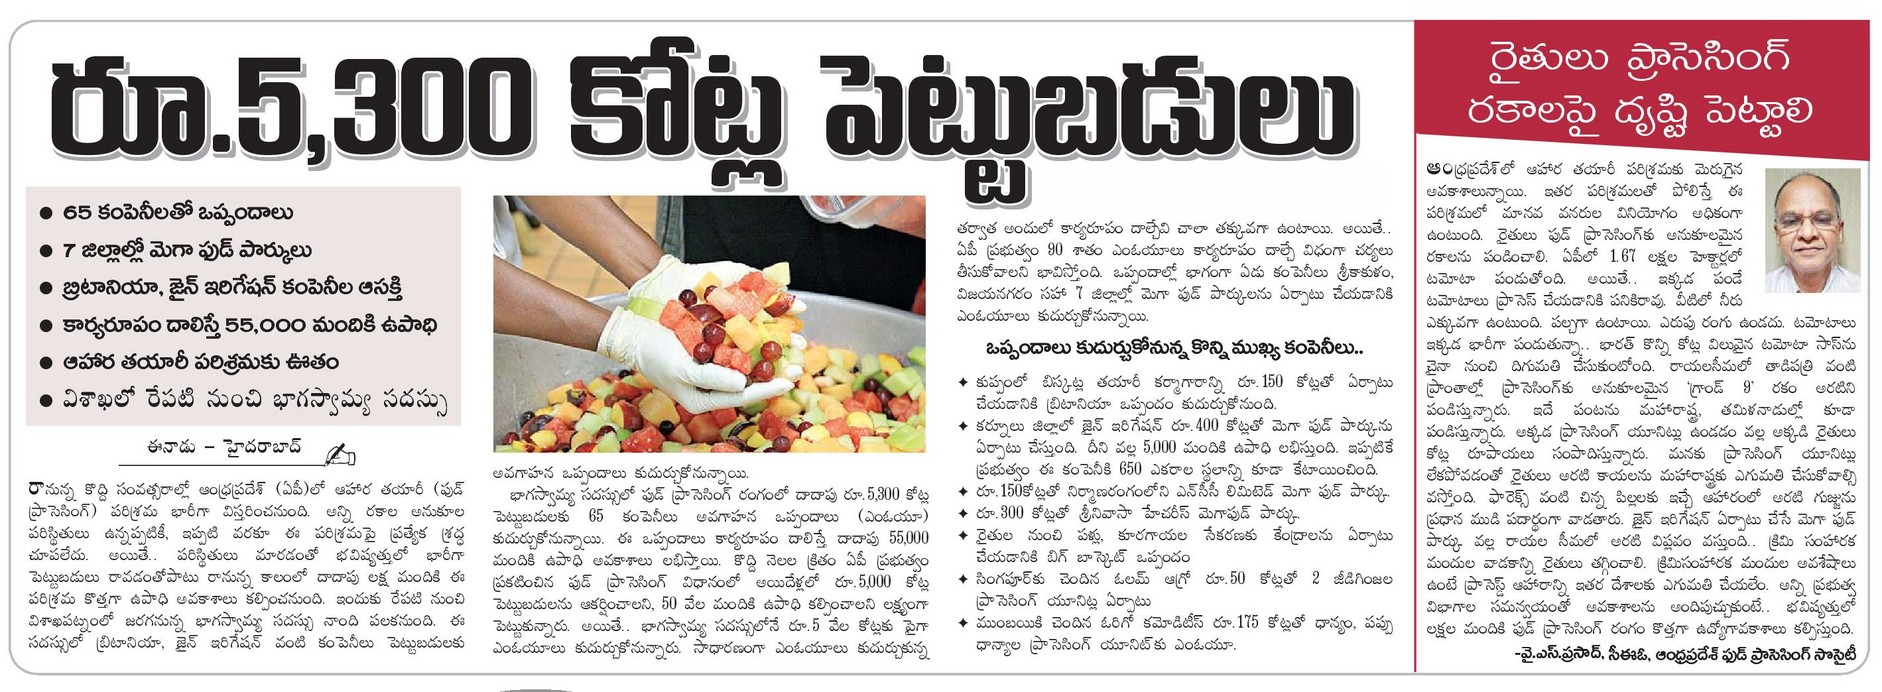 5,300 crores investments in Food processing industries in Andhra Pradesh